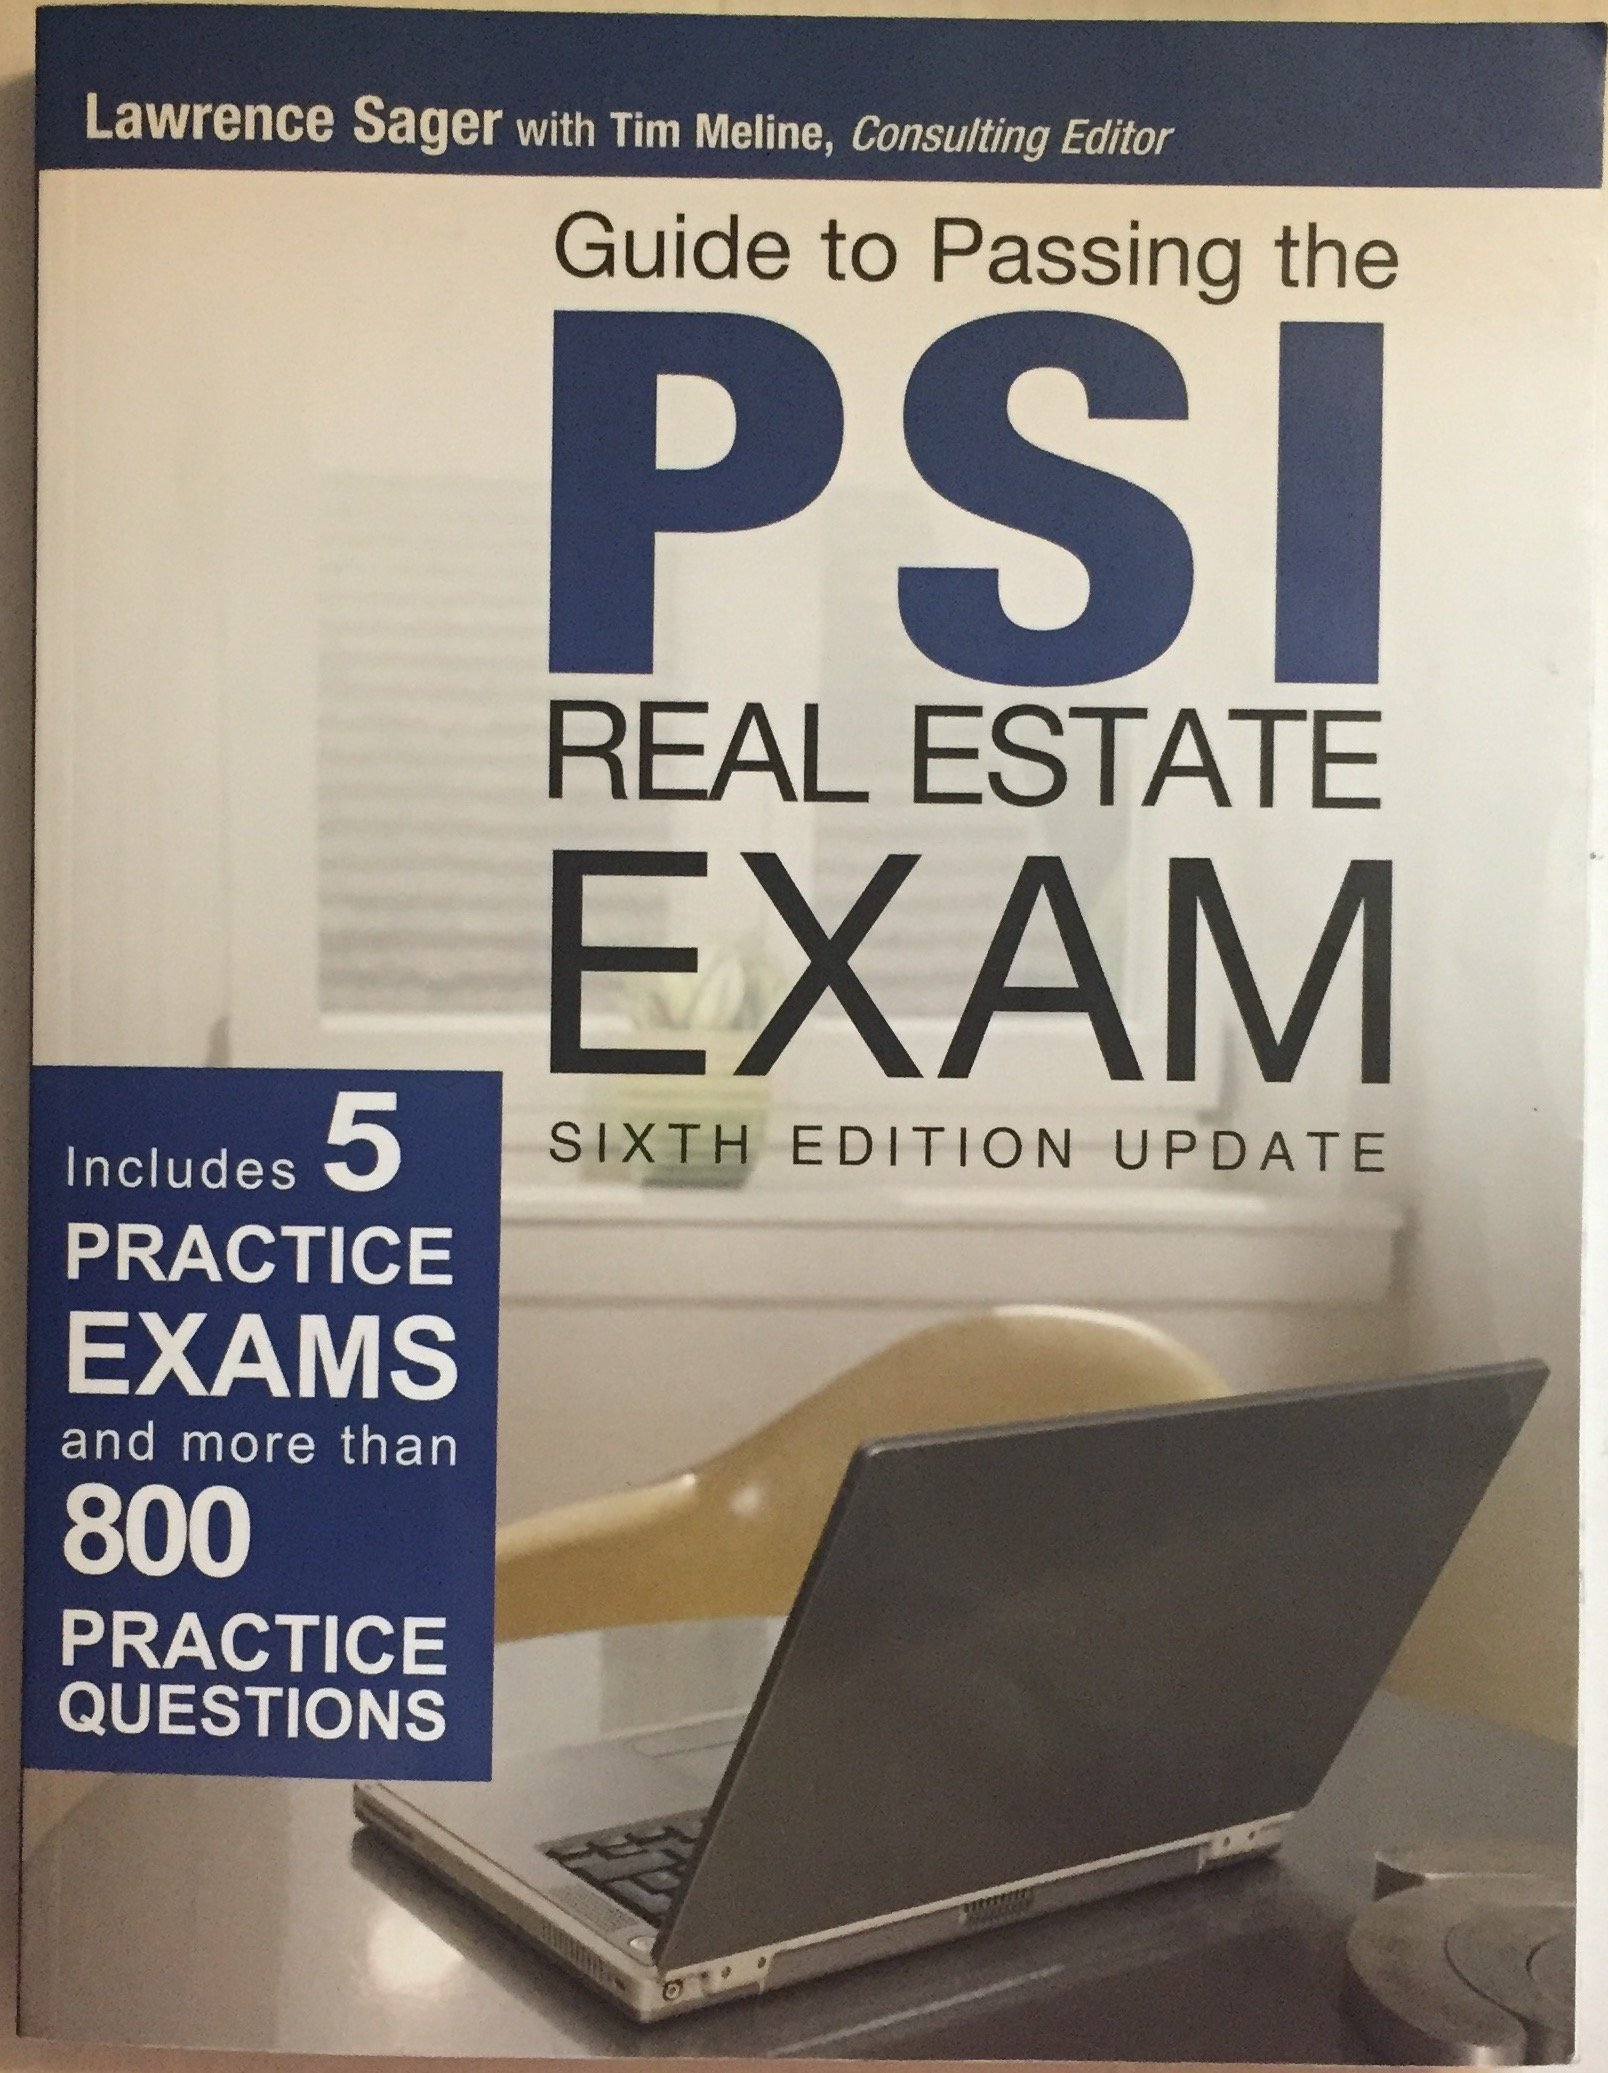 Guide to Passing Psi Real... Updated: Consulting Editor Lawrence Sager with  Ti: 9781427721389: Amazon.com: Books